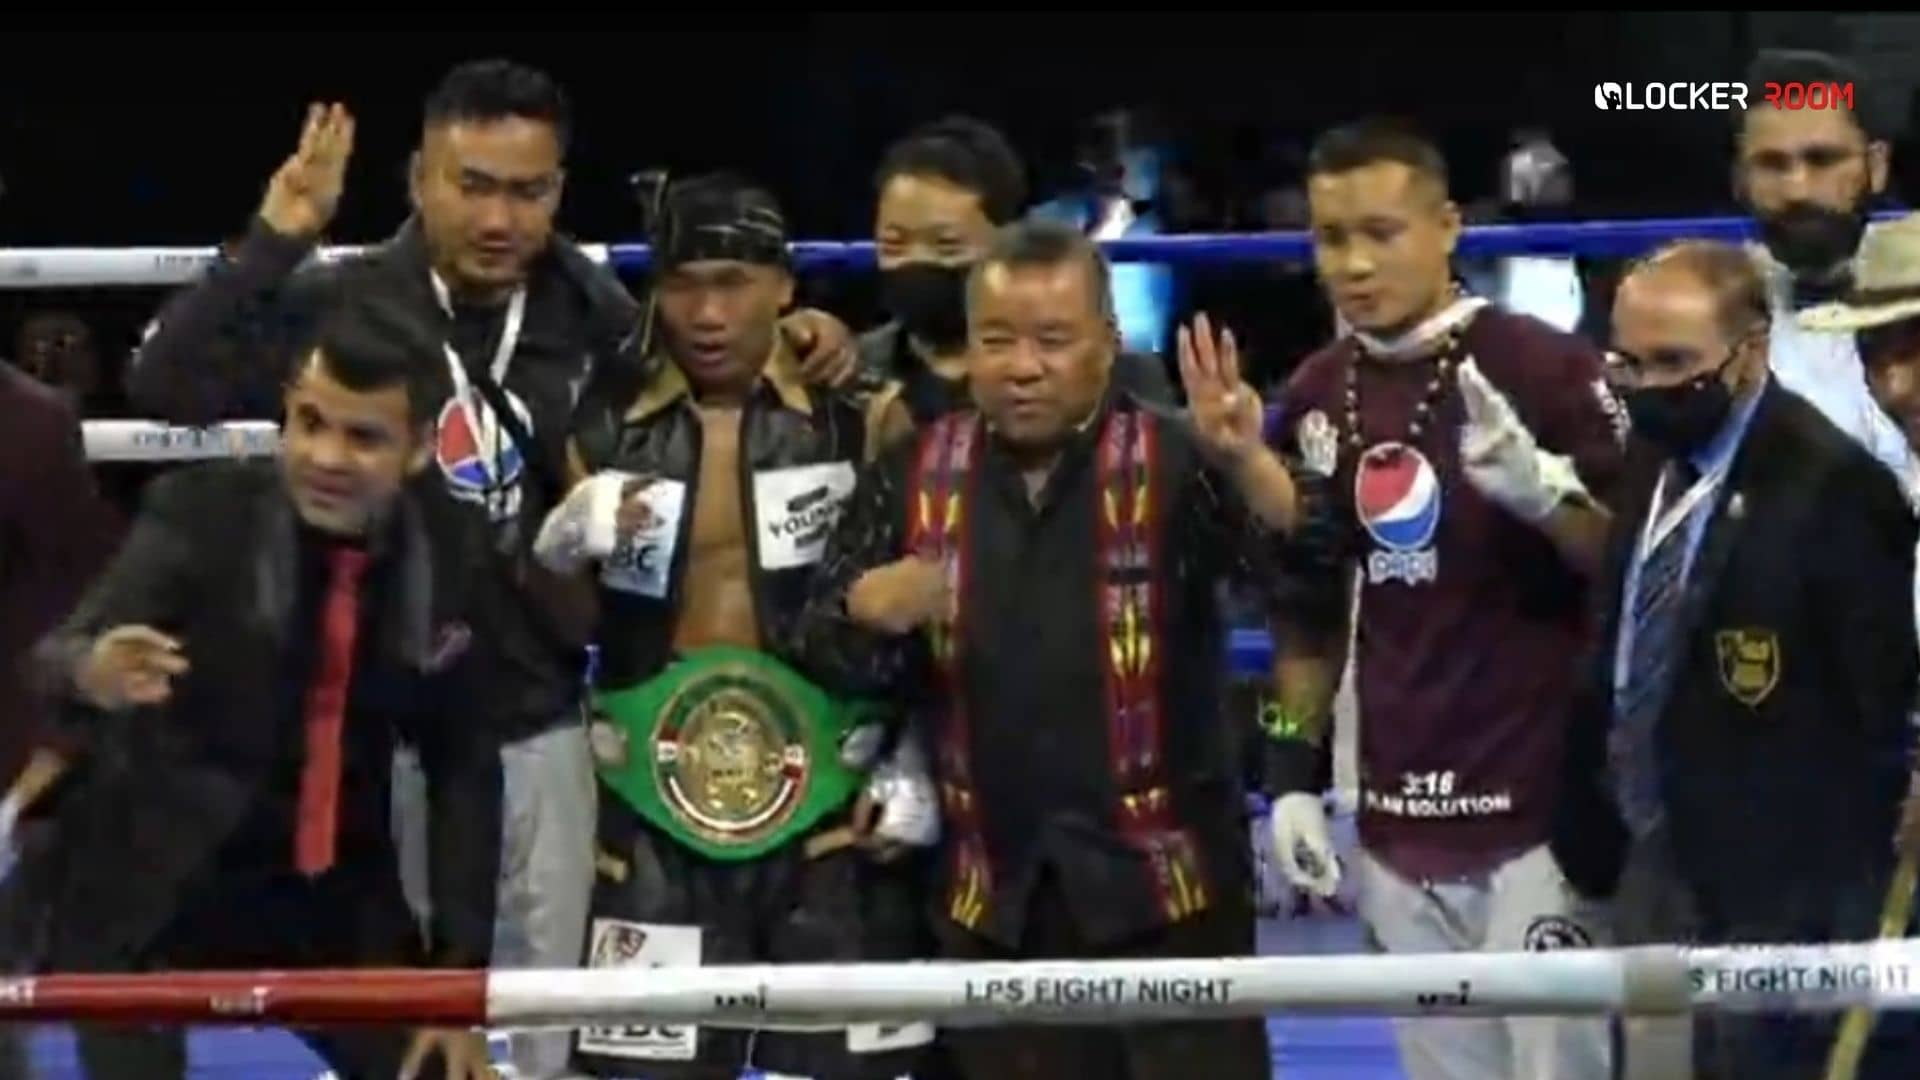 https://lockerroom.in/blog/view/Lalrinsanga-Tlau-Sangtea-WBC-World-Youth-Title-India